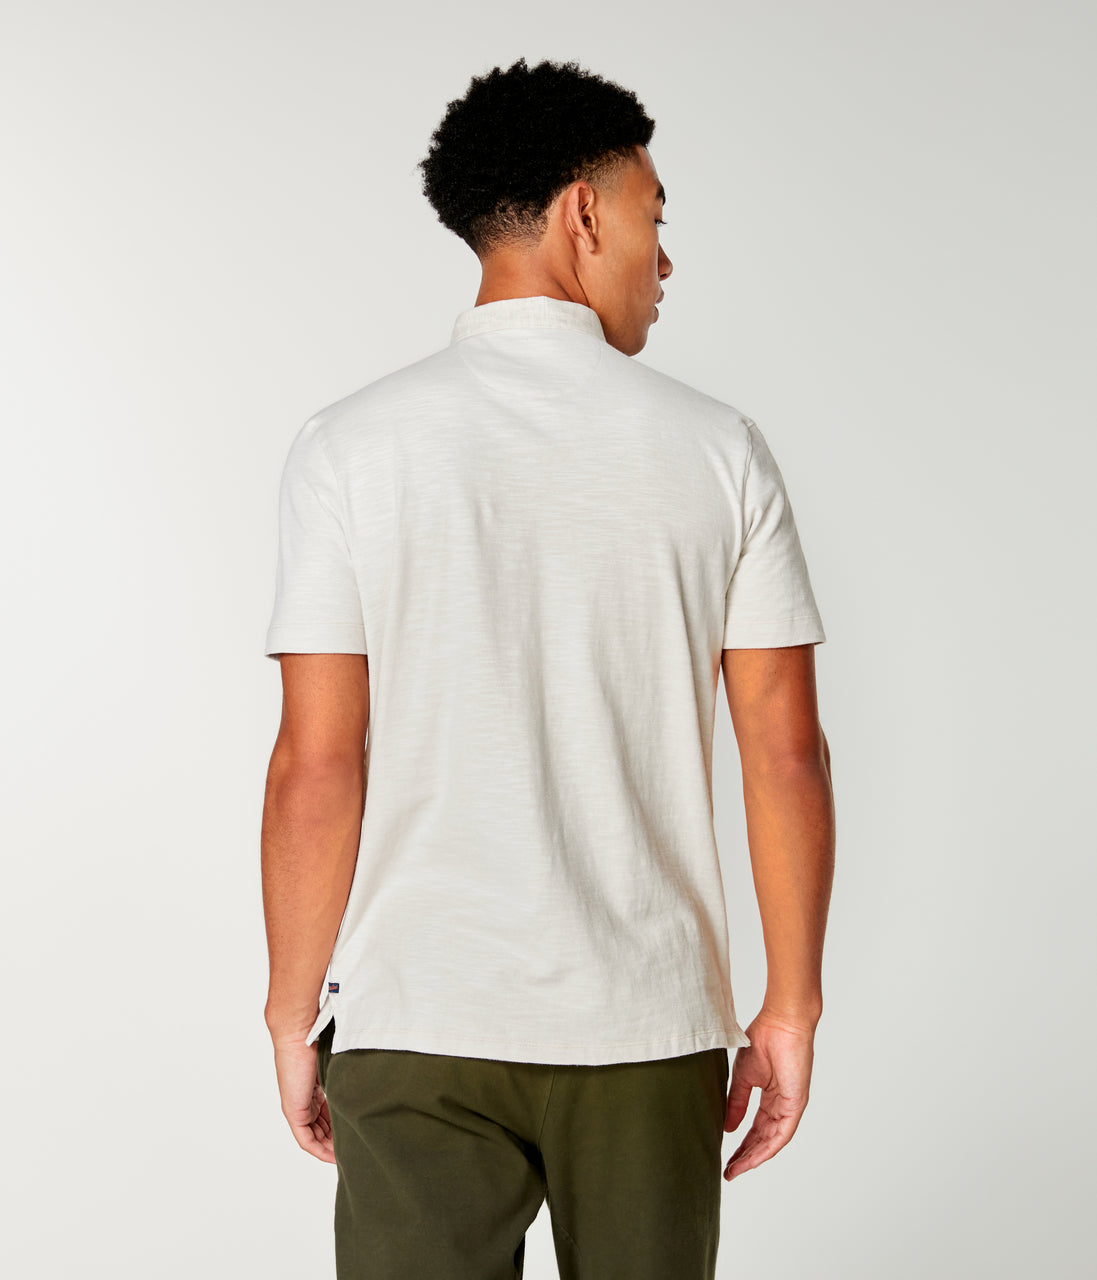 Soft Slub Jersey Polo - Oatmeal - Good Man Brand - Soft Slub Jersey Polo - Oatmeal